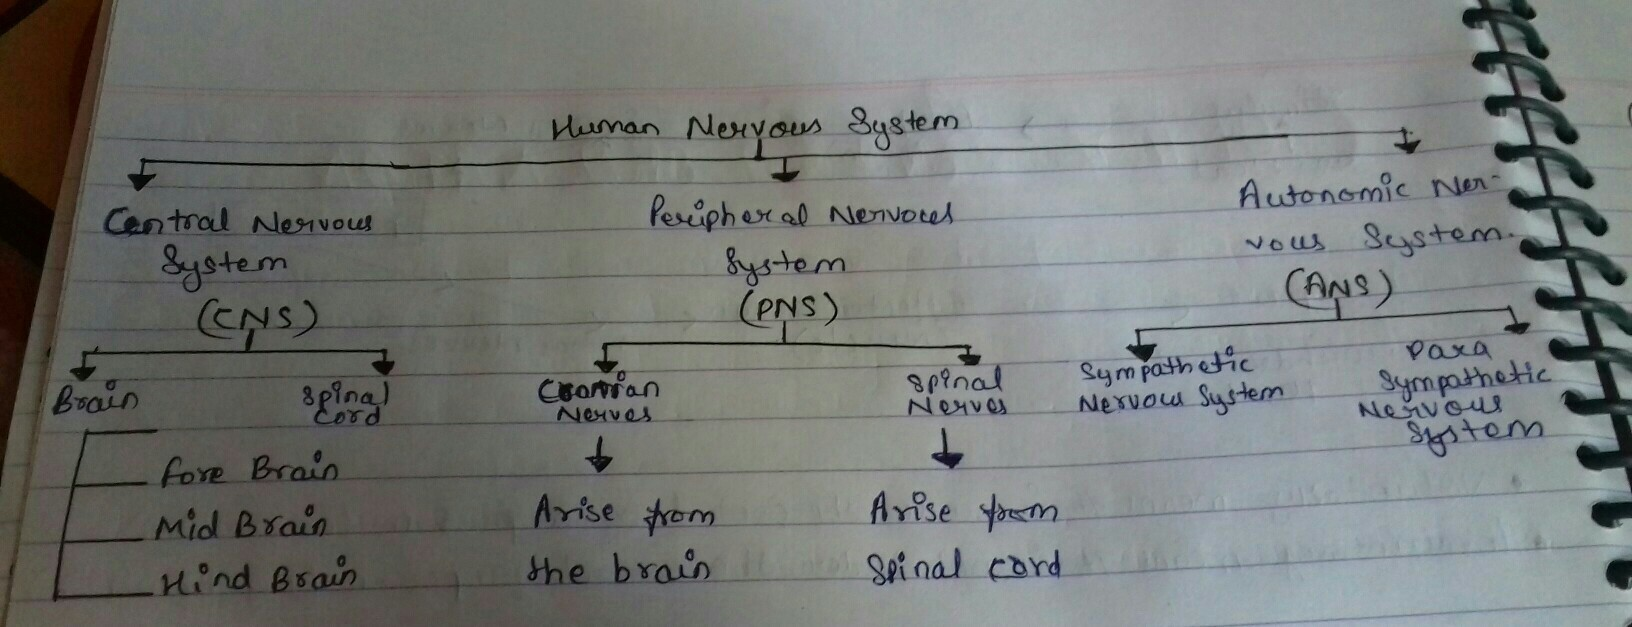 Draw A Flow Chart To Show The Classification Of Nervous System In To